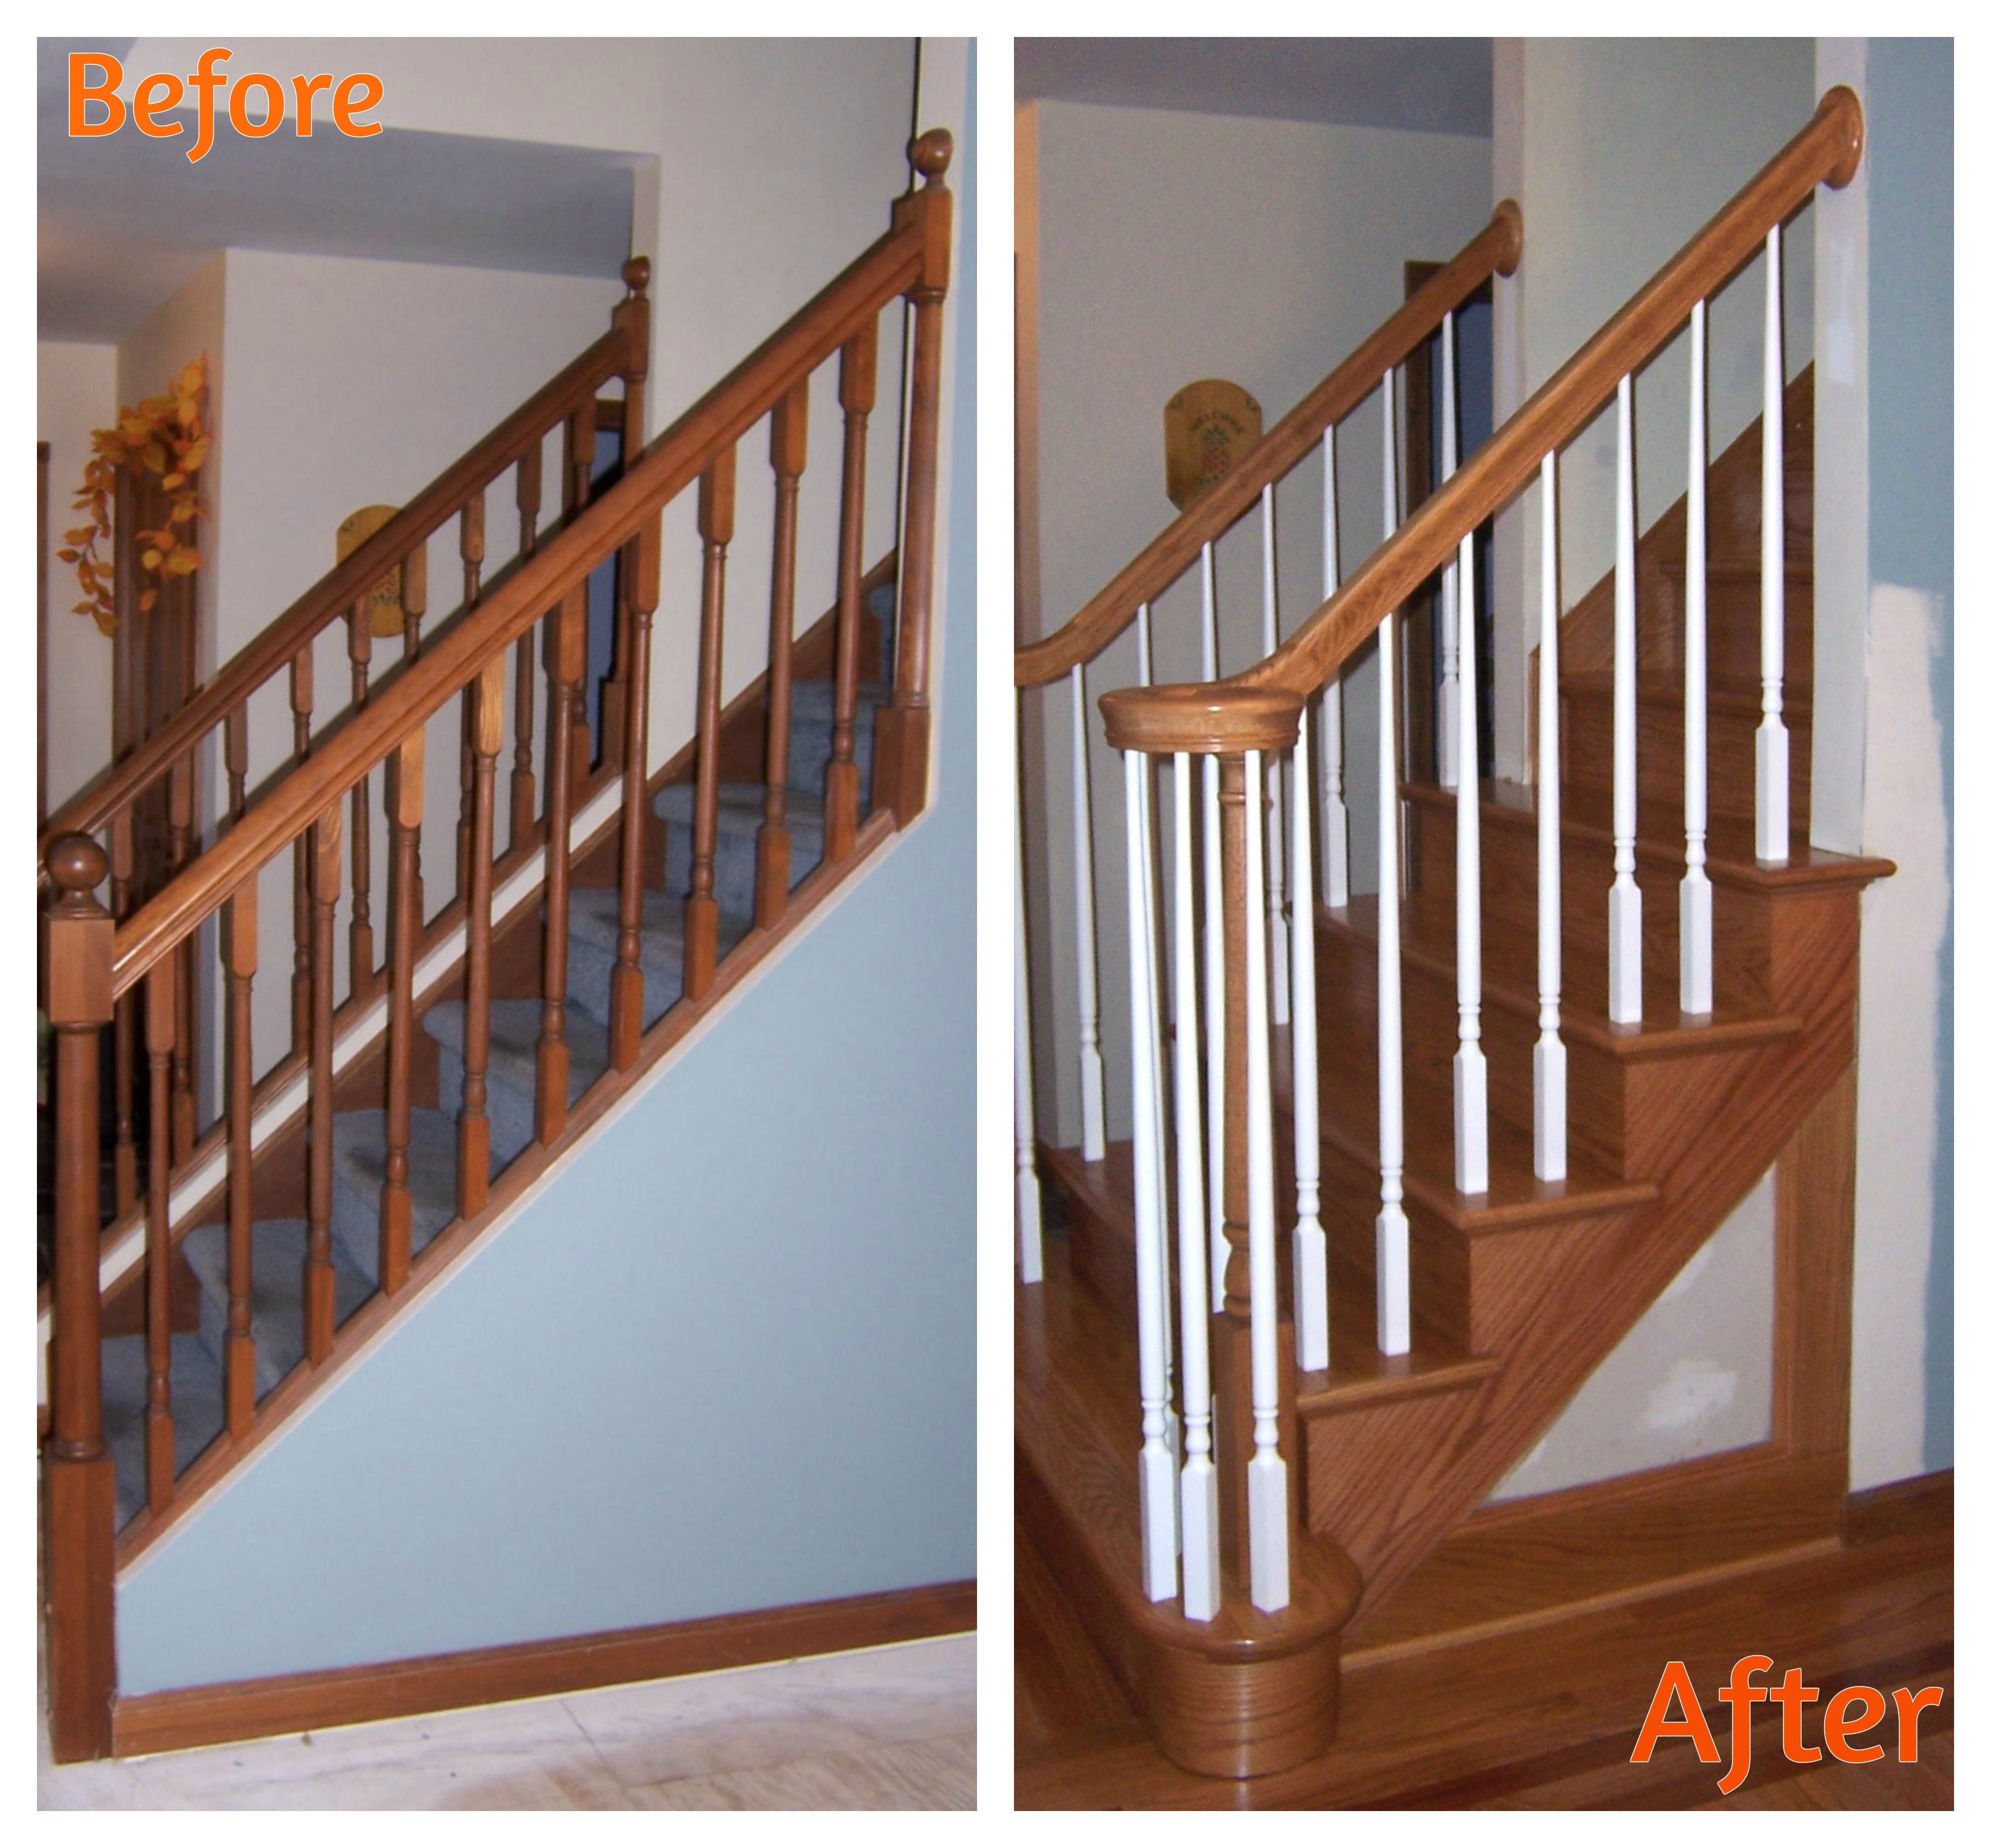 Remodel, Reface U0026 Refinish Your Stairs With NuStair